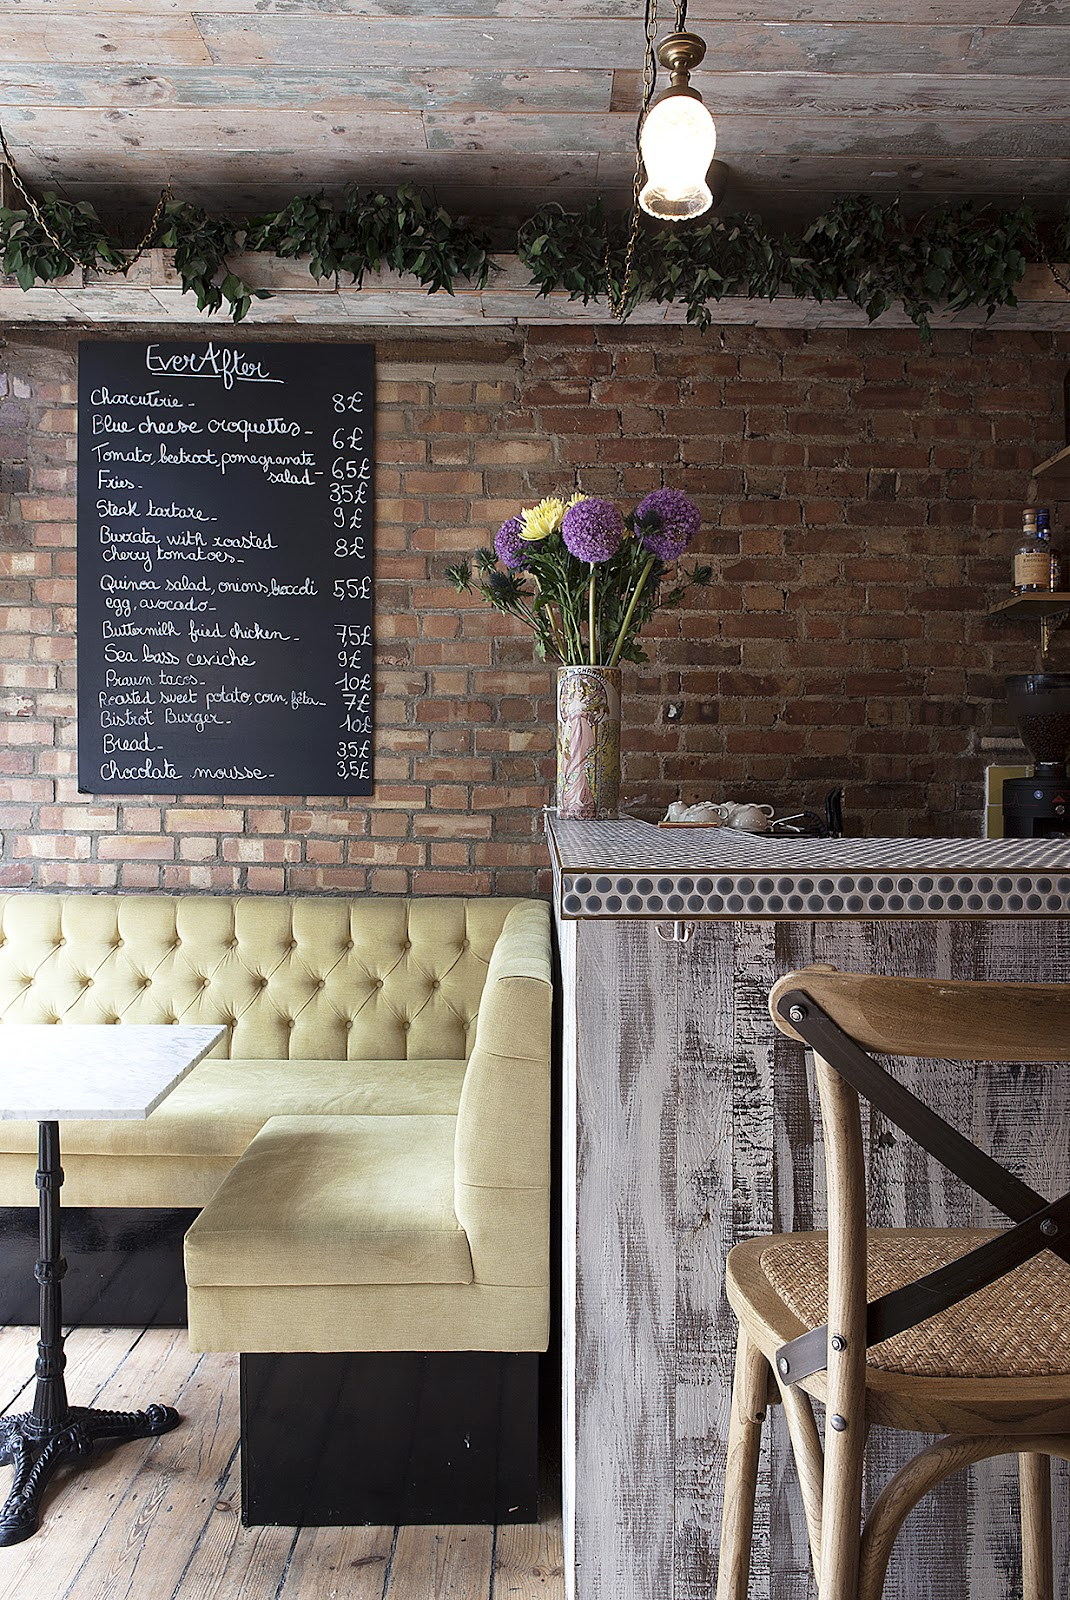 London's Top Bars for Bank Holiday